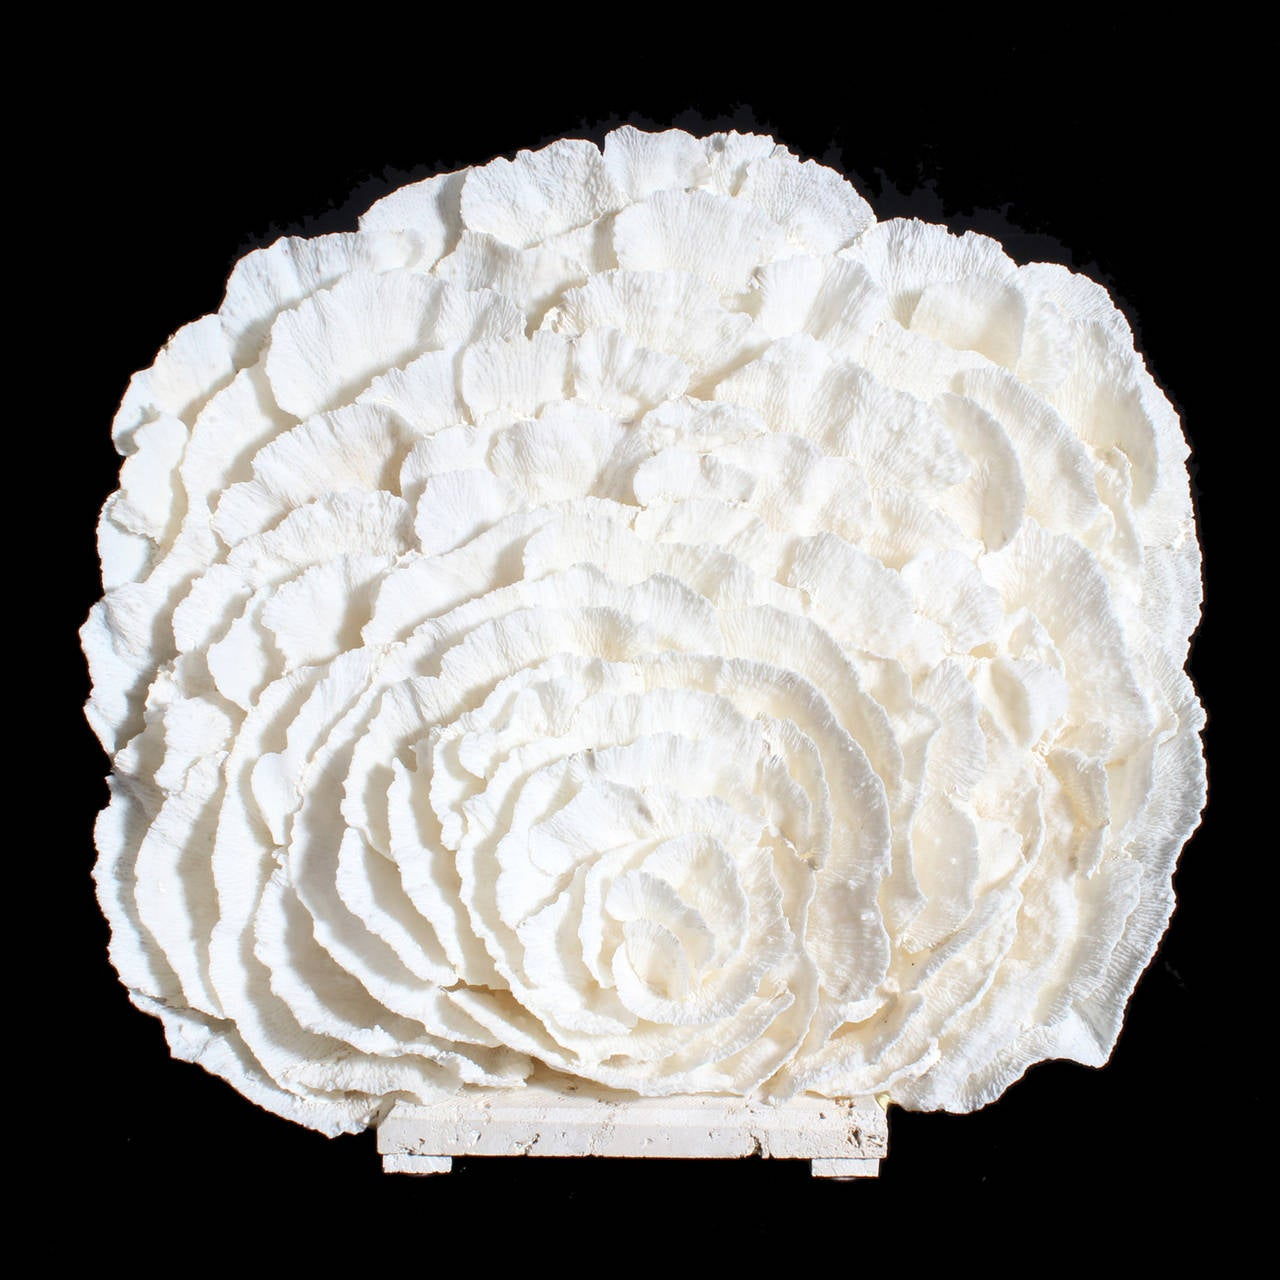 Large white merulina coral sculpture or centerpiece at stdibs